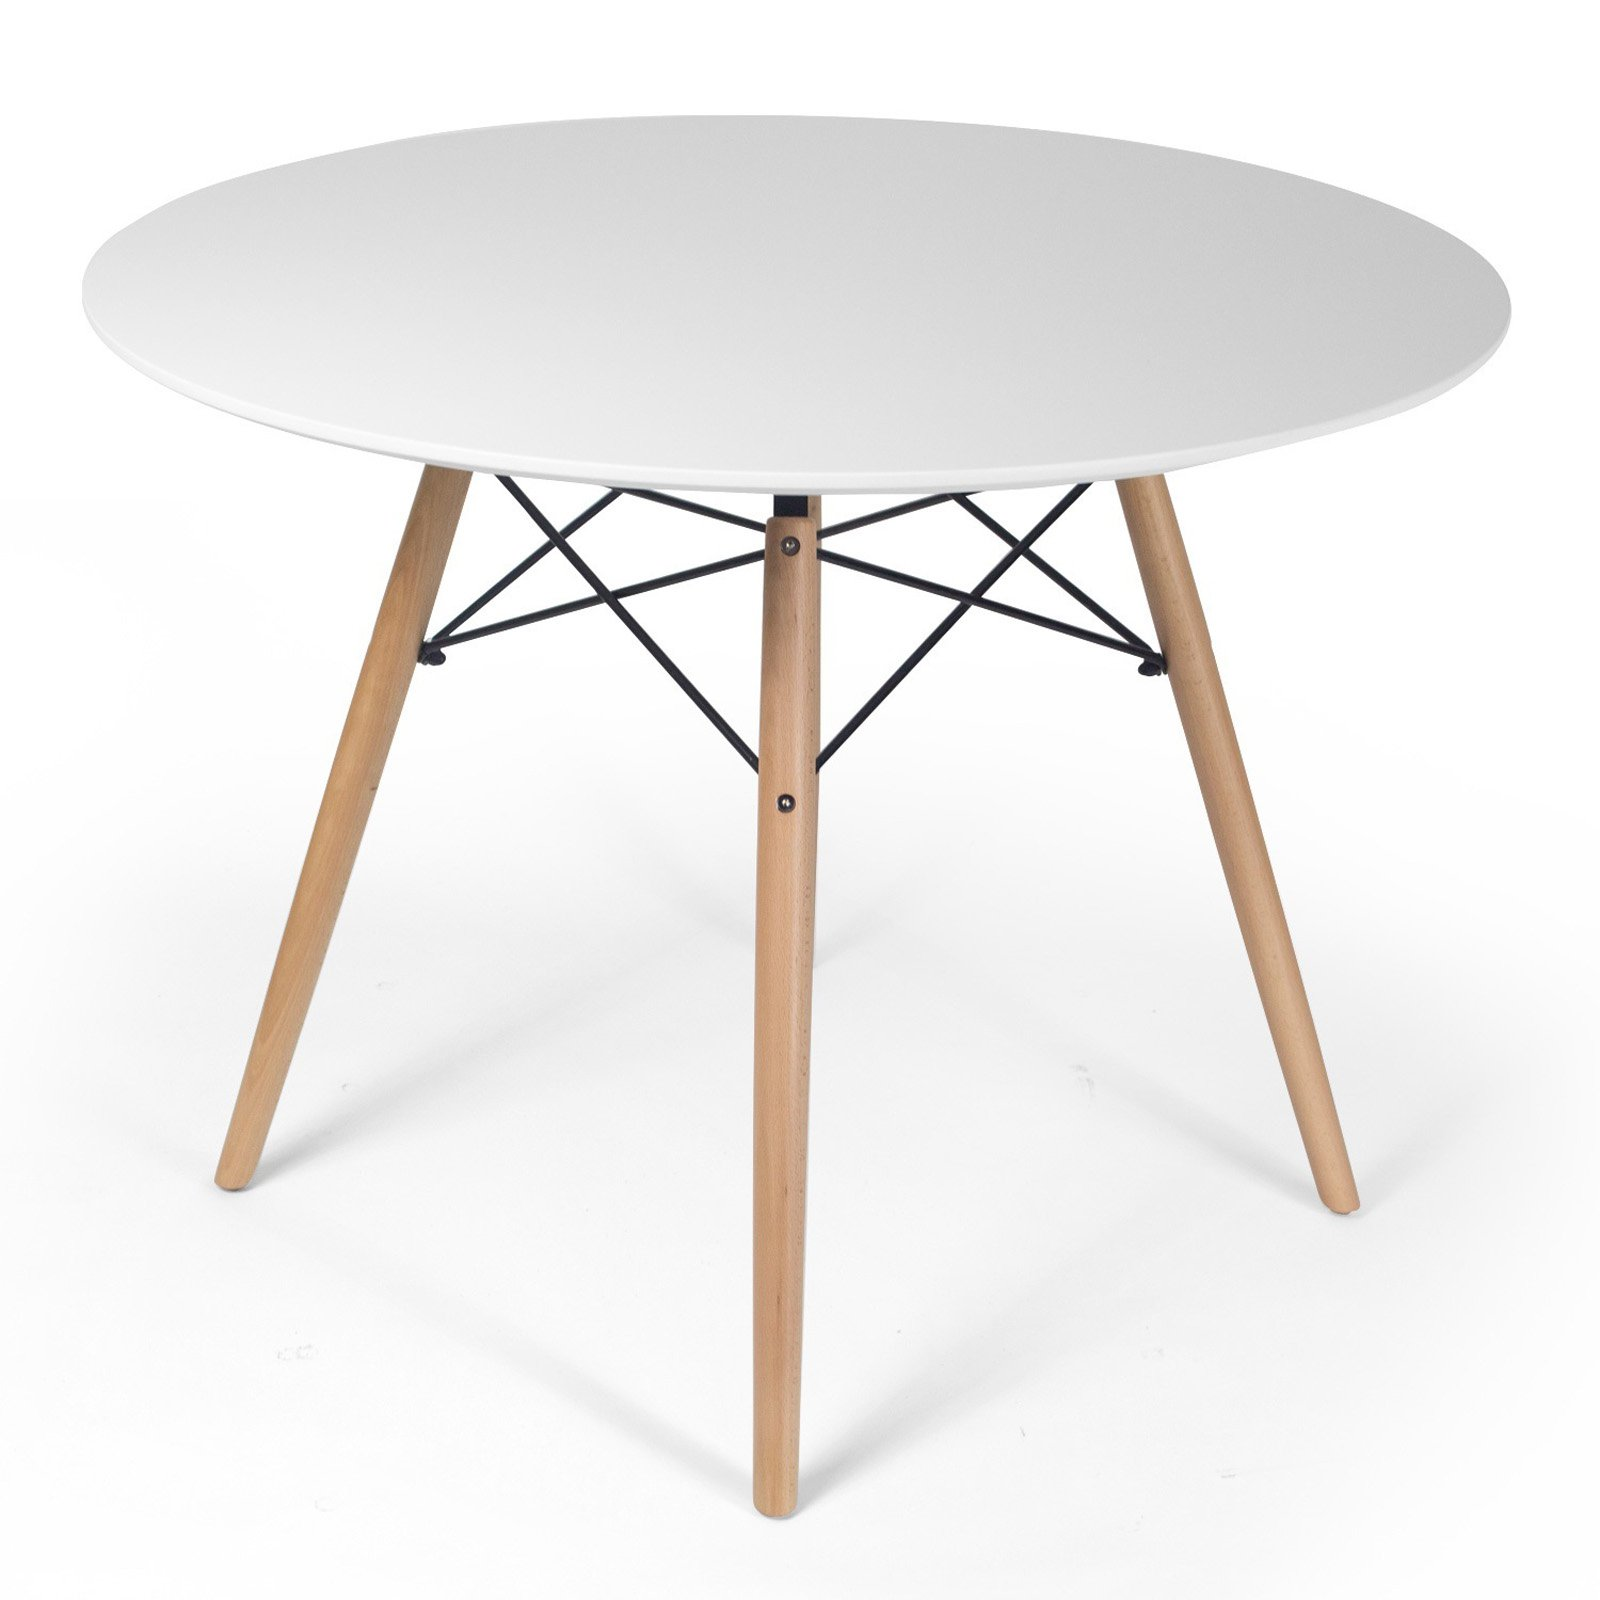 Aeon Parisian 39.5 in. Round Dining Table by Aeon Furniture